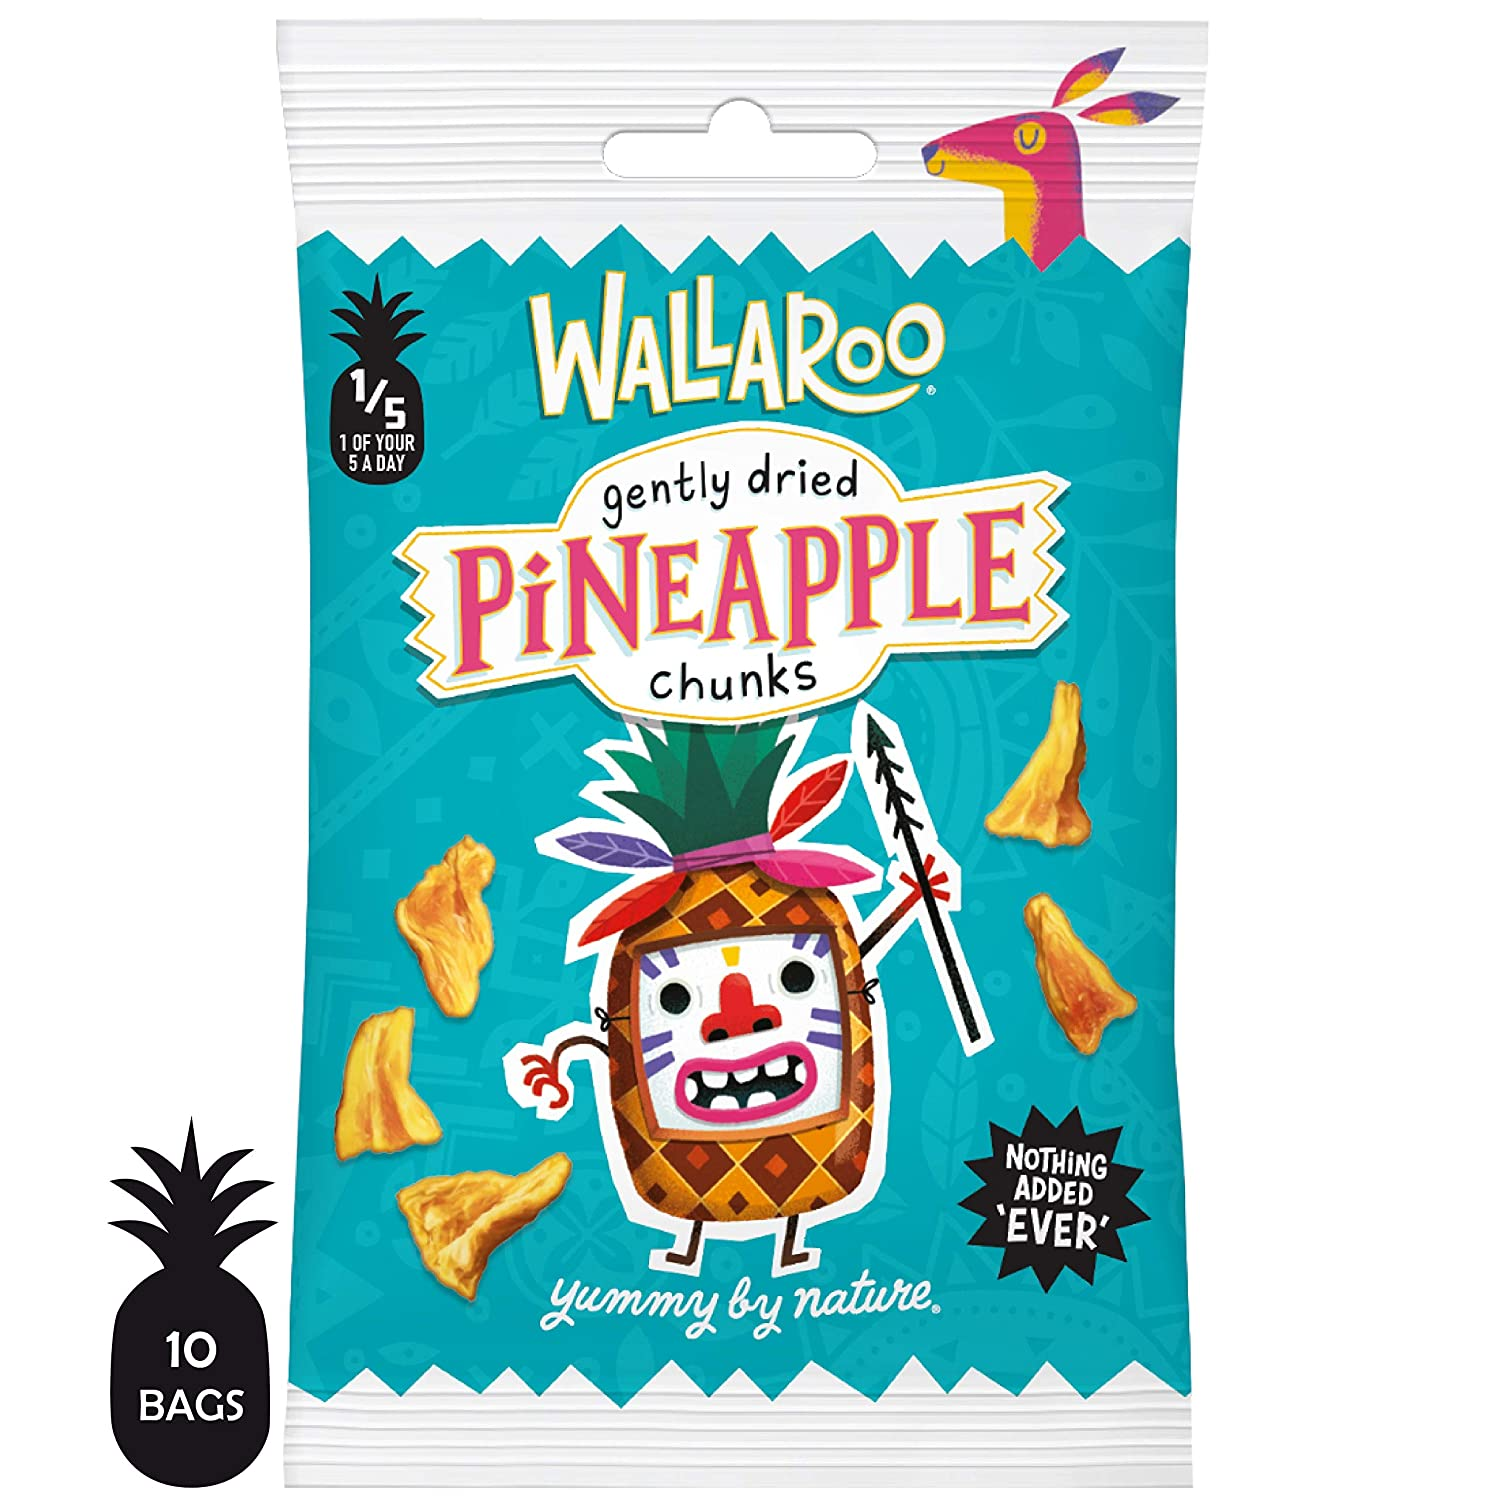 Wallaroo Gently Dried Pineapple Chunks, 100% Pineapple Fruit Snack, No Sugar or Preservatives, Home Compostable Portion Sized Packs, Box of 10 x 30g Wallaroo Foods Ltd UKPNEBX300